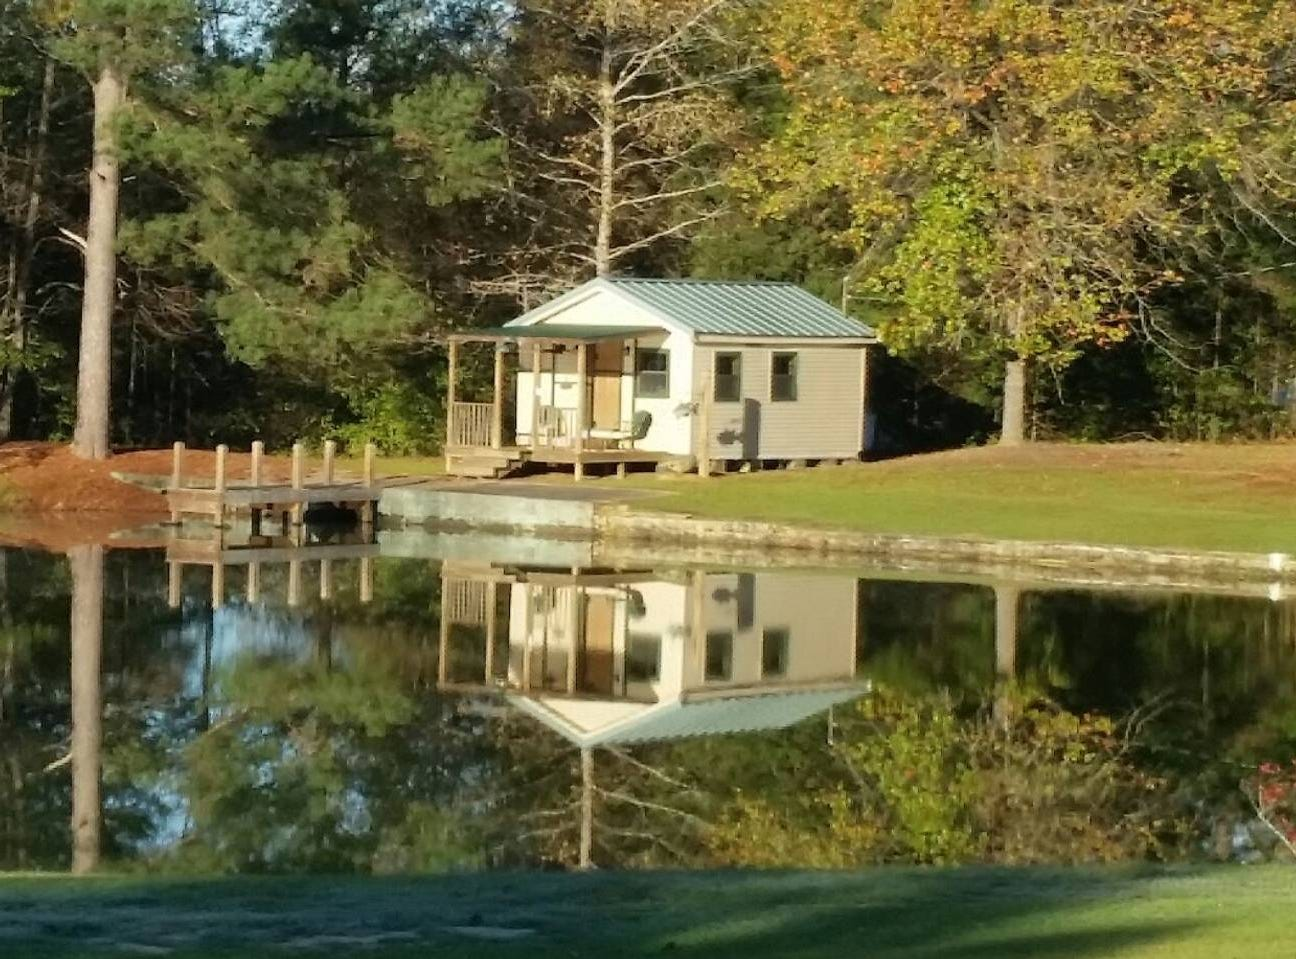 The Cozy Lil Pond House for pondering  n Daleville near Meridian has an open floor plan inside and a front porch outside to enjoy the sites on the pond.